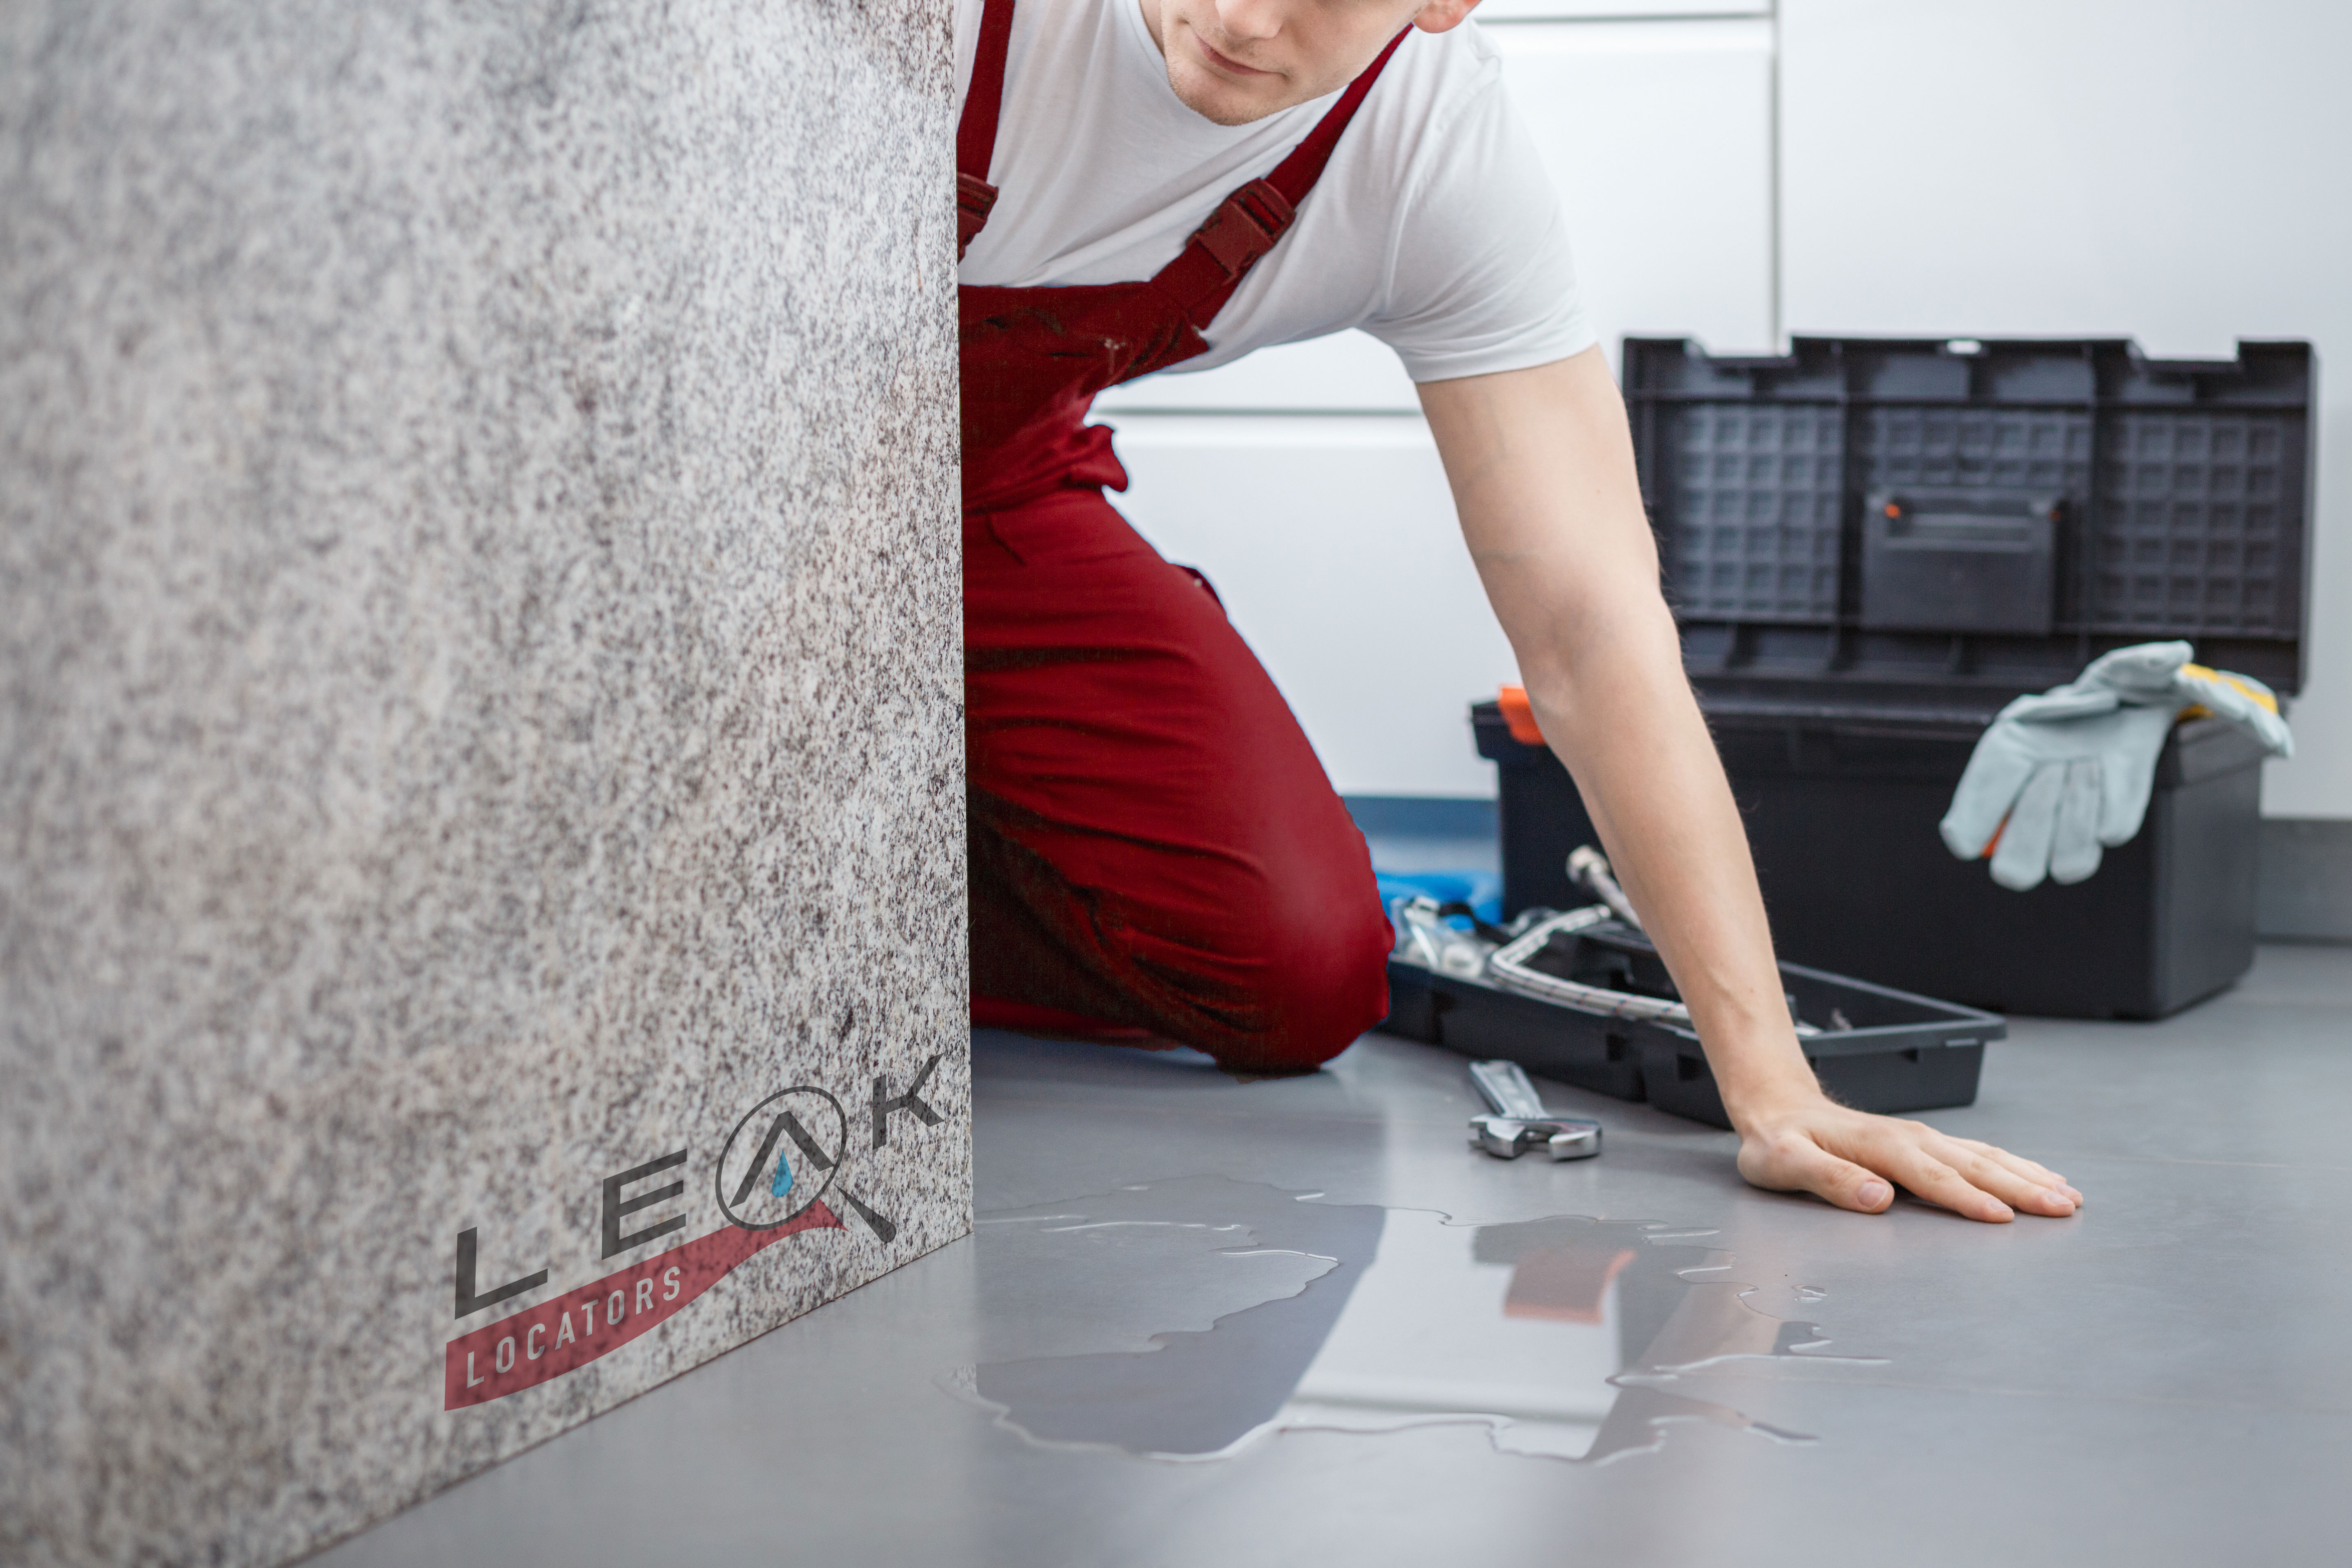 Plumbing Leak in Marco Island | Crawl Space Plumbing Leaks